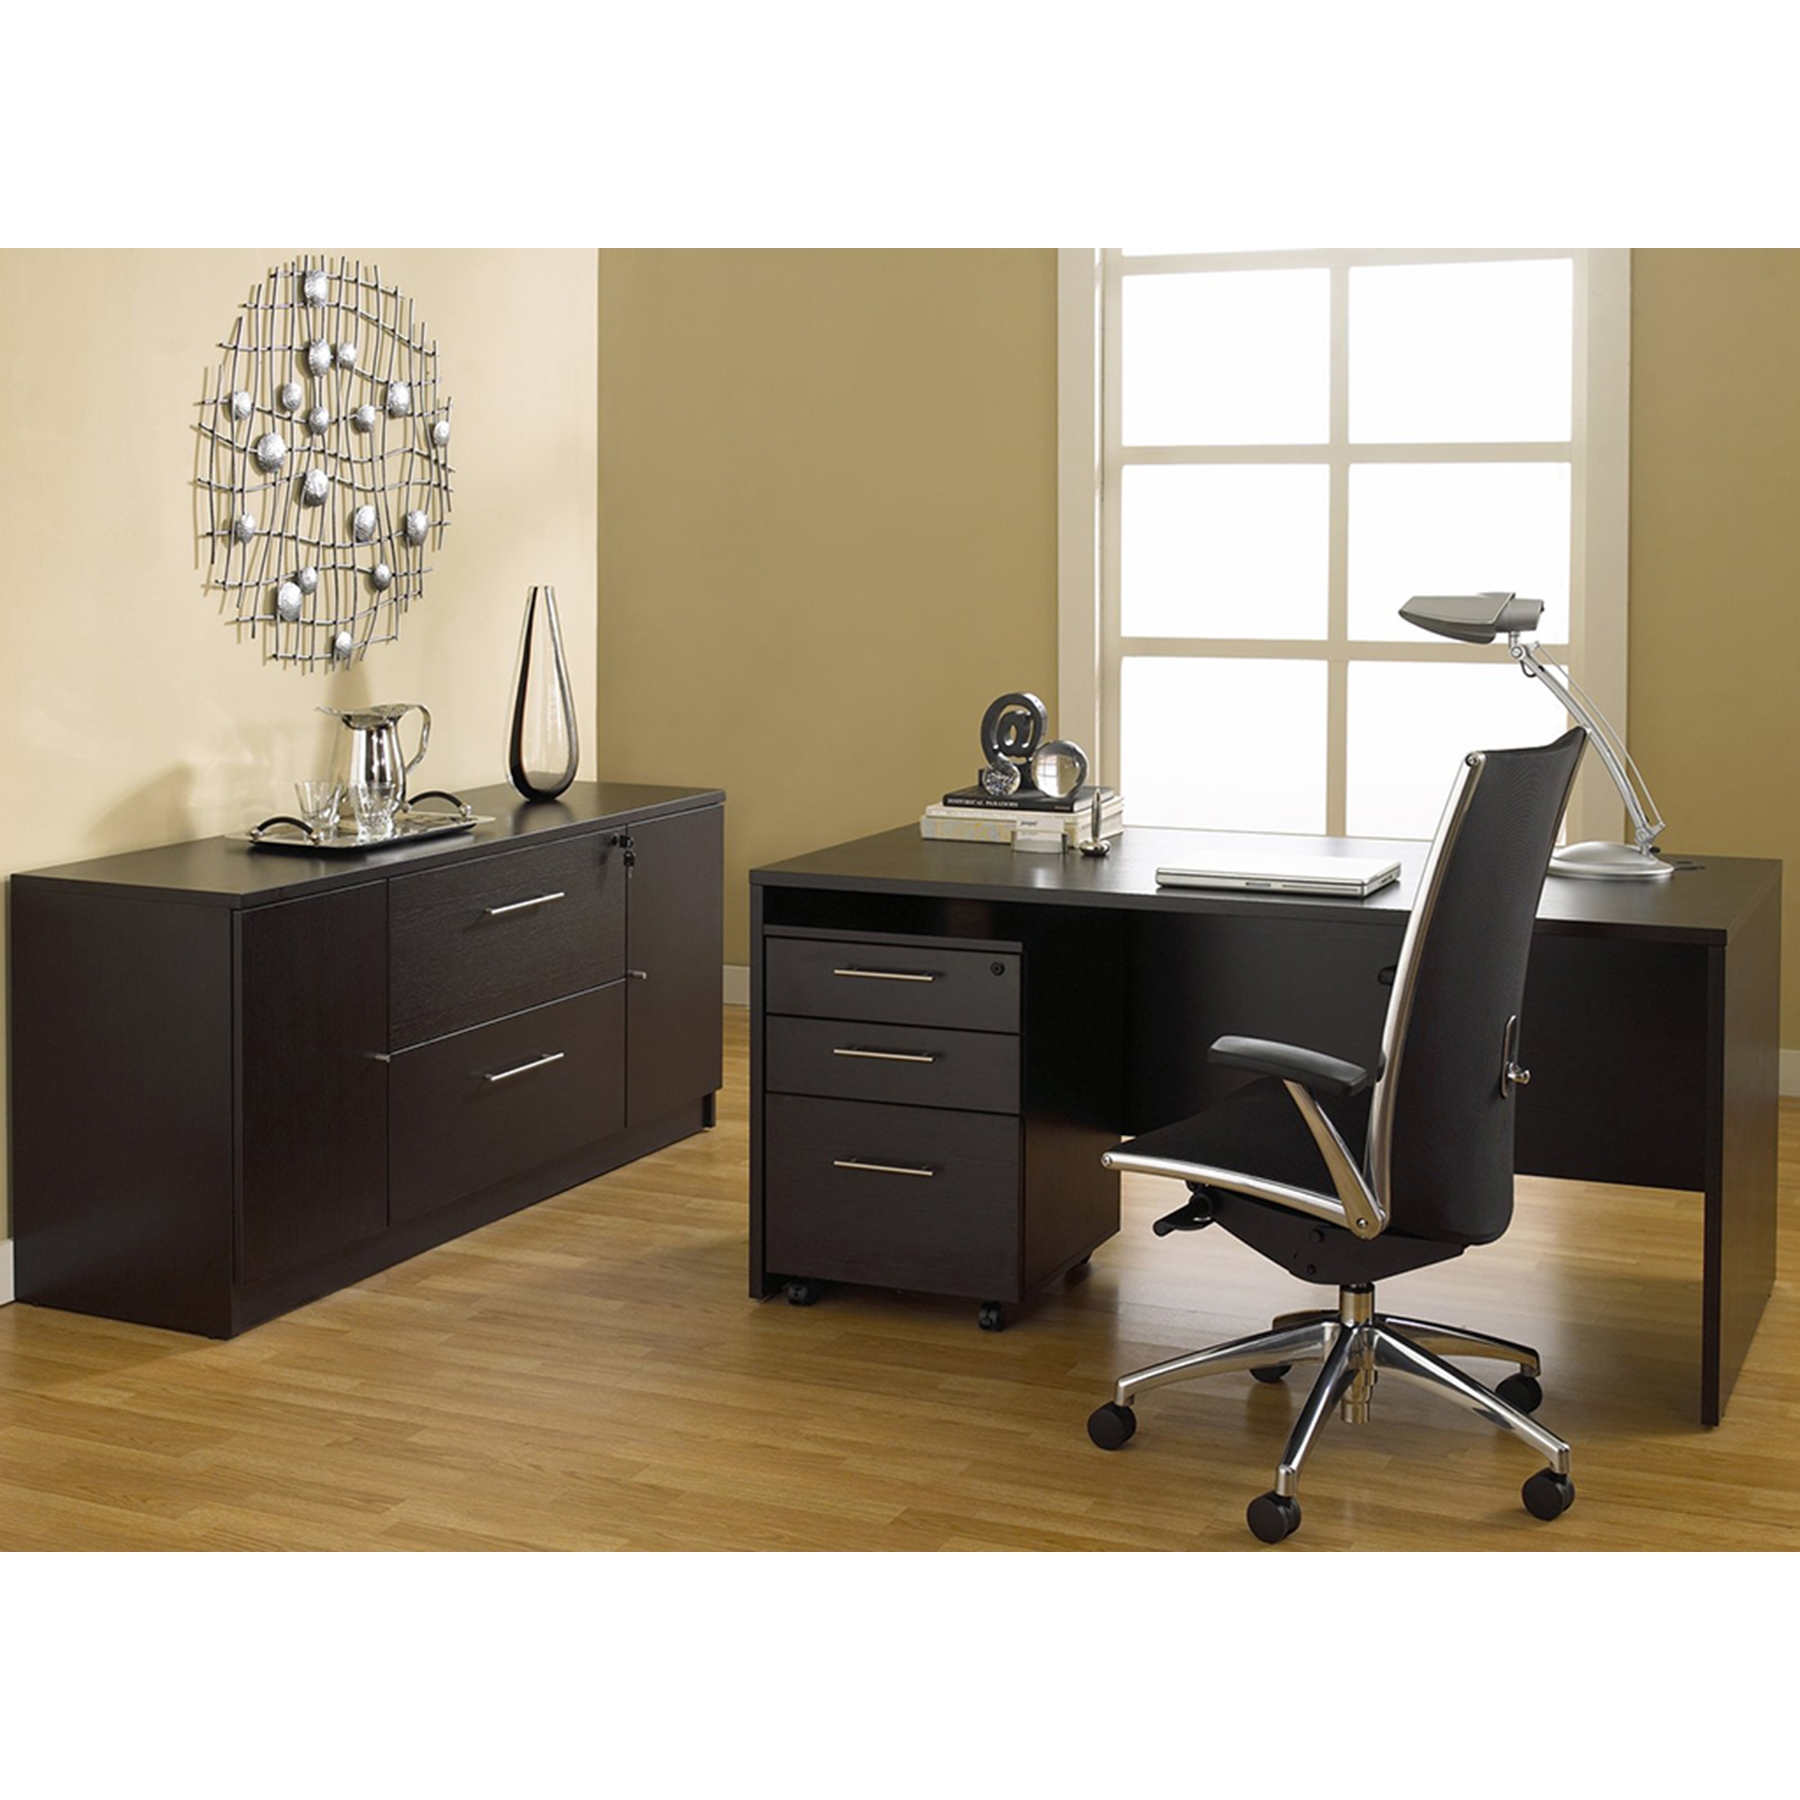 100 Series Executive Office Desk   Credenza, Mobile Pedestal    UNIQ 1C100008M ...